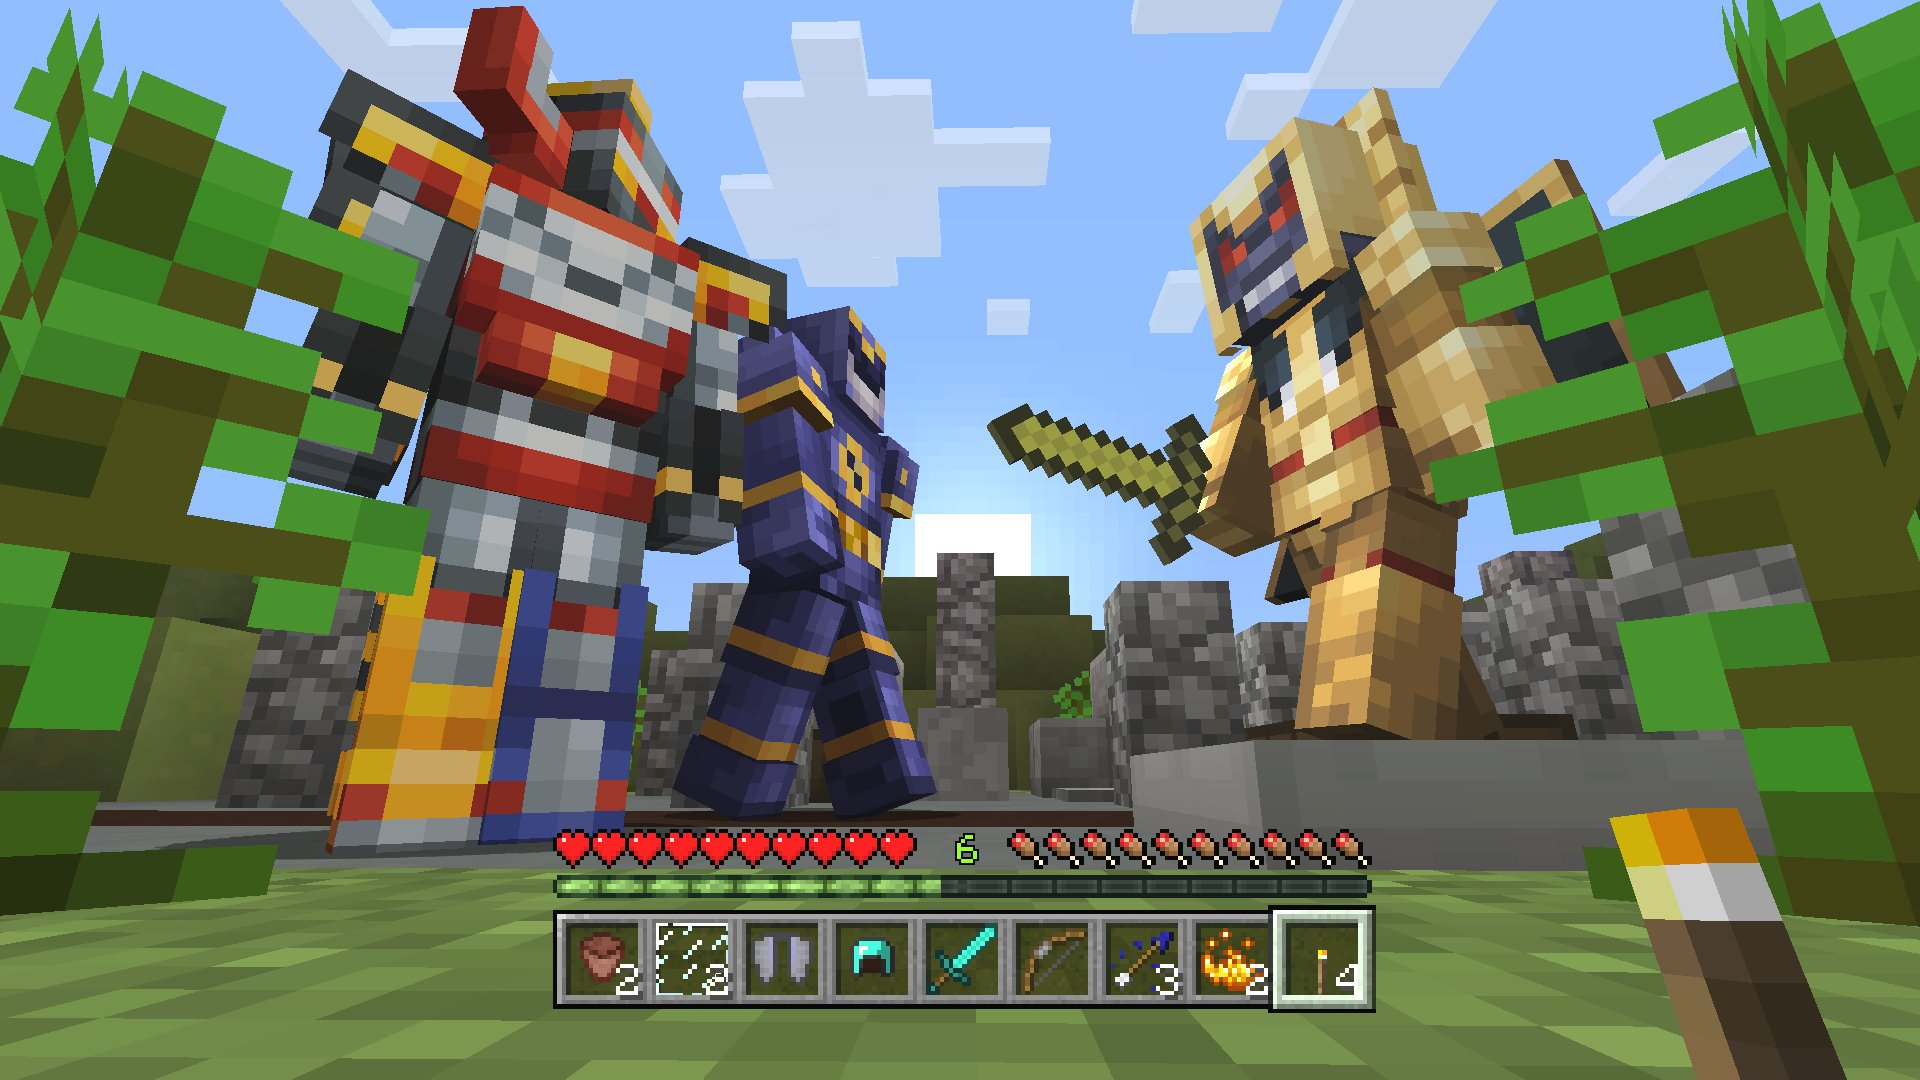 Minecraft power rangers skin pack on ps4 official for The game mind craft